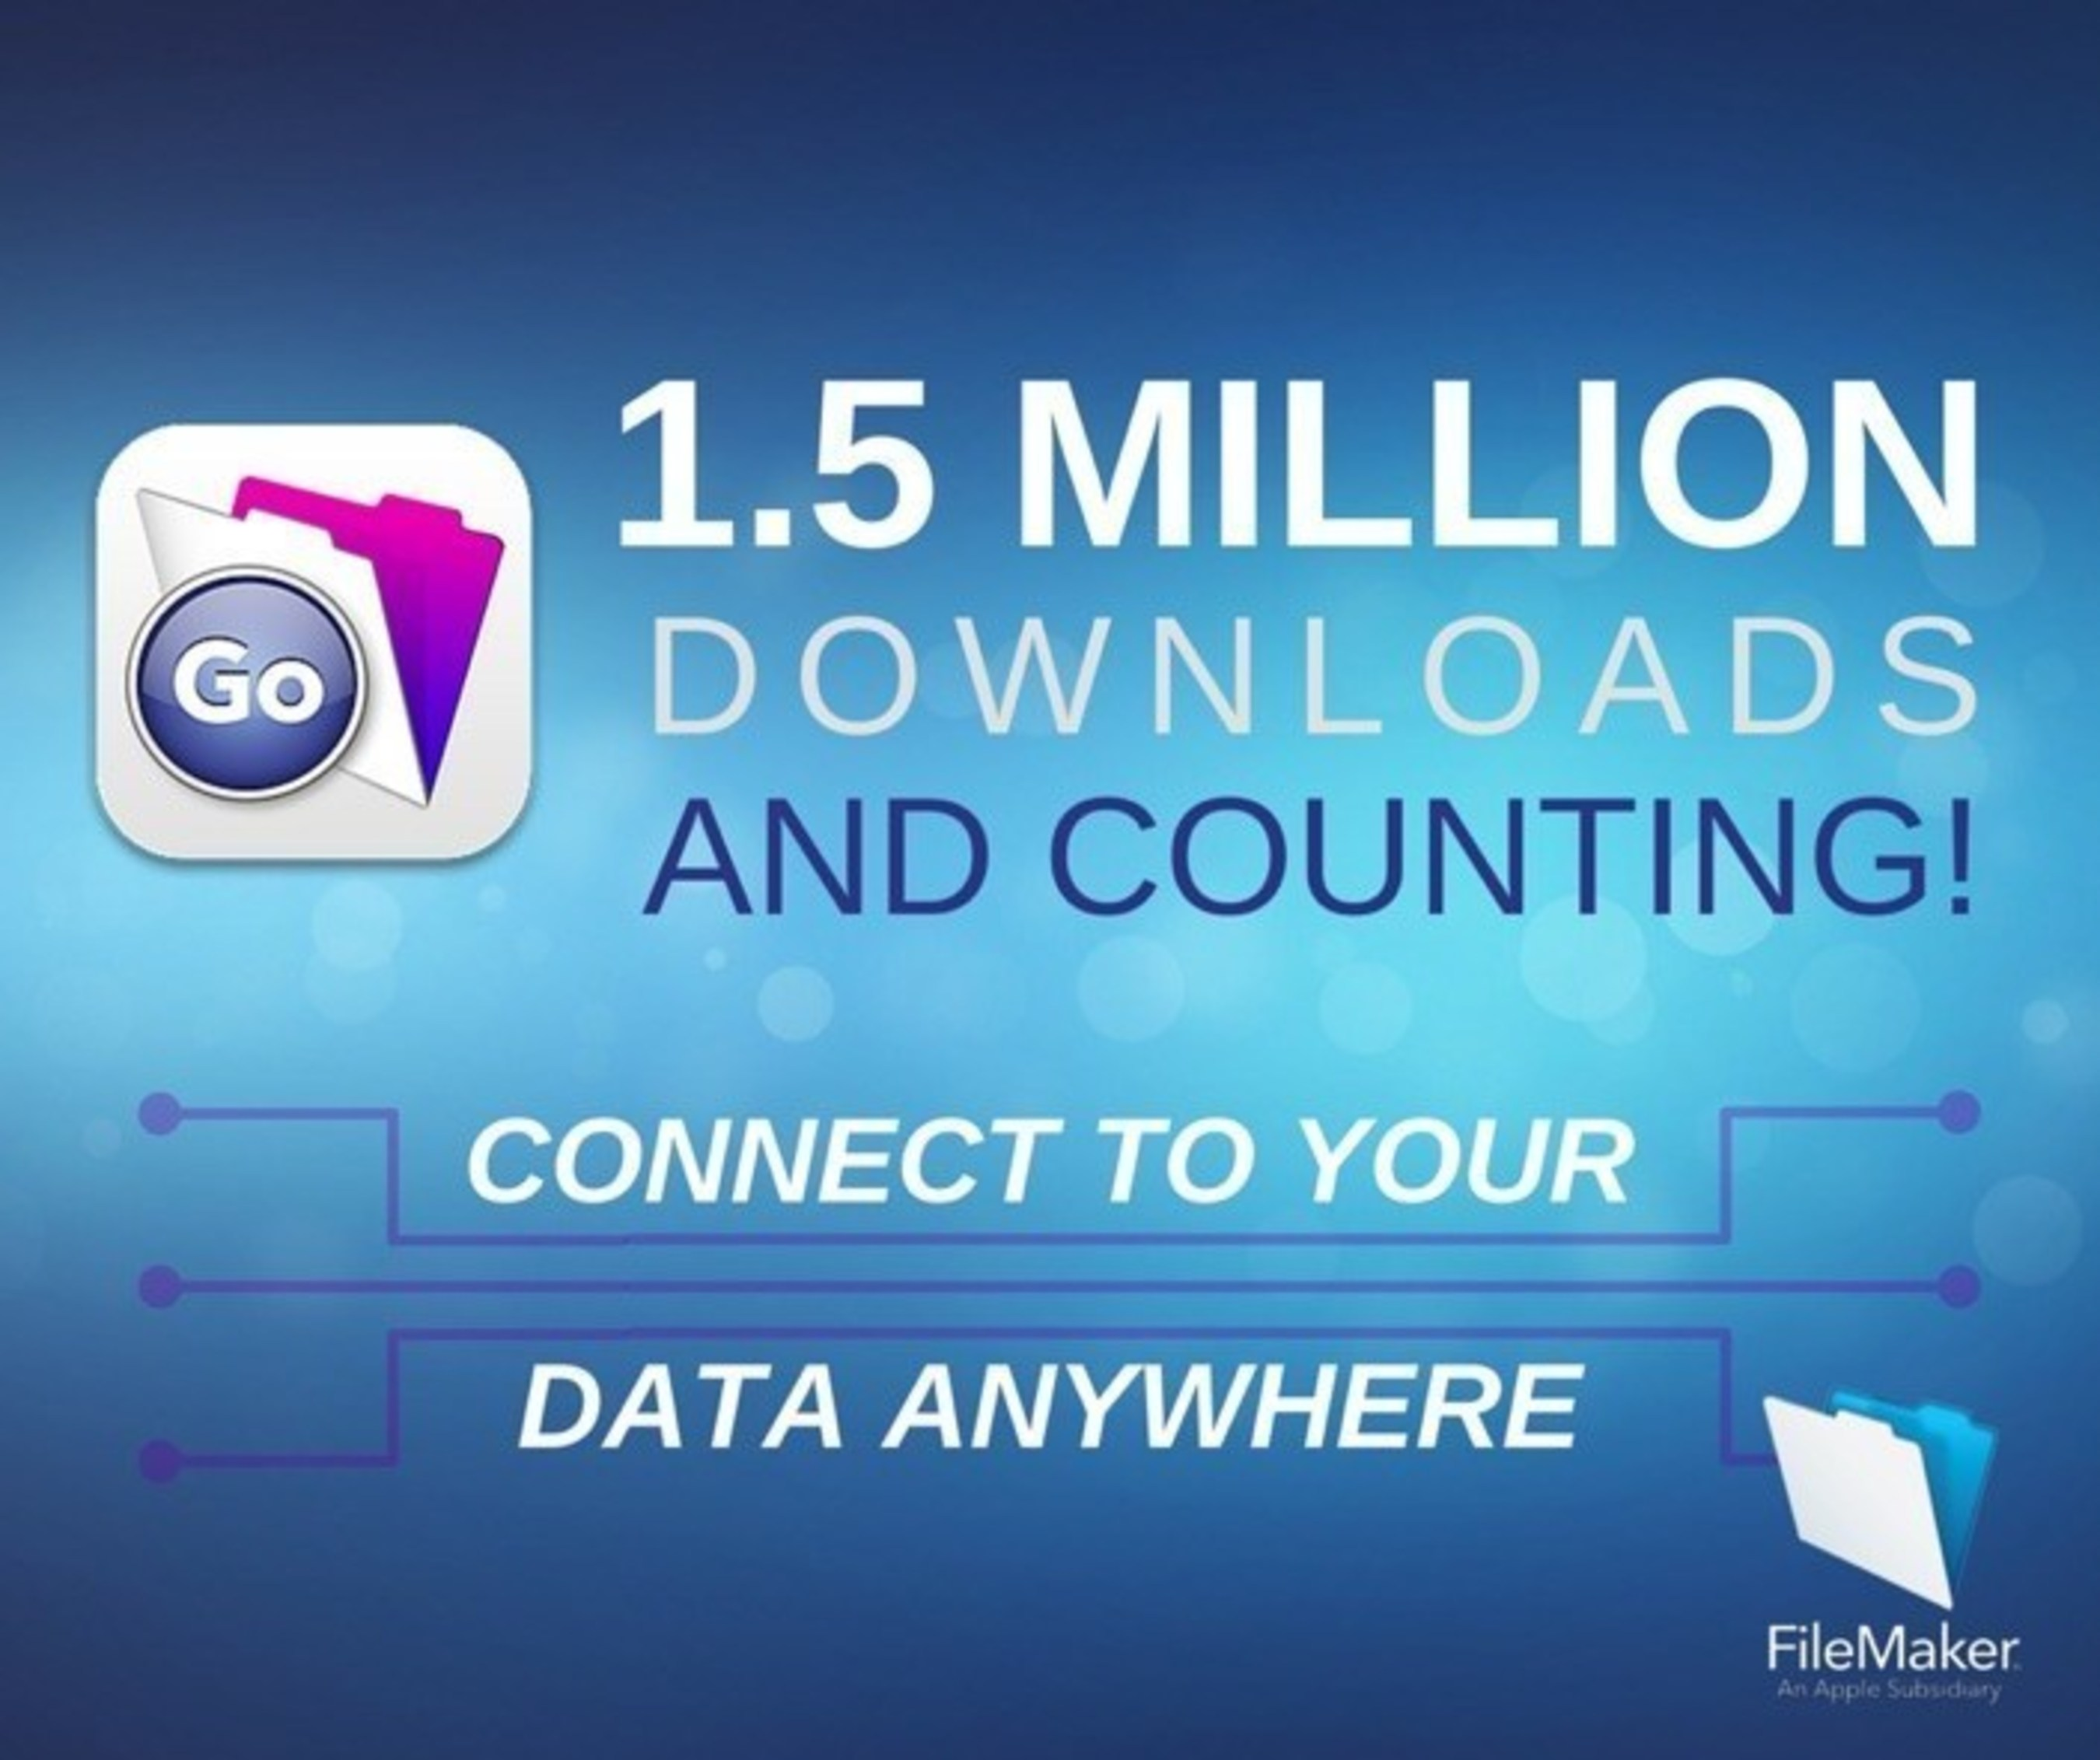 FileMaker Go for iPad and iPhone: Over 1.5 million downloads and counting